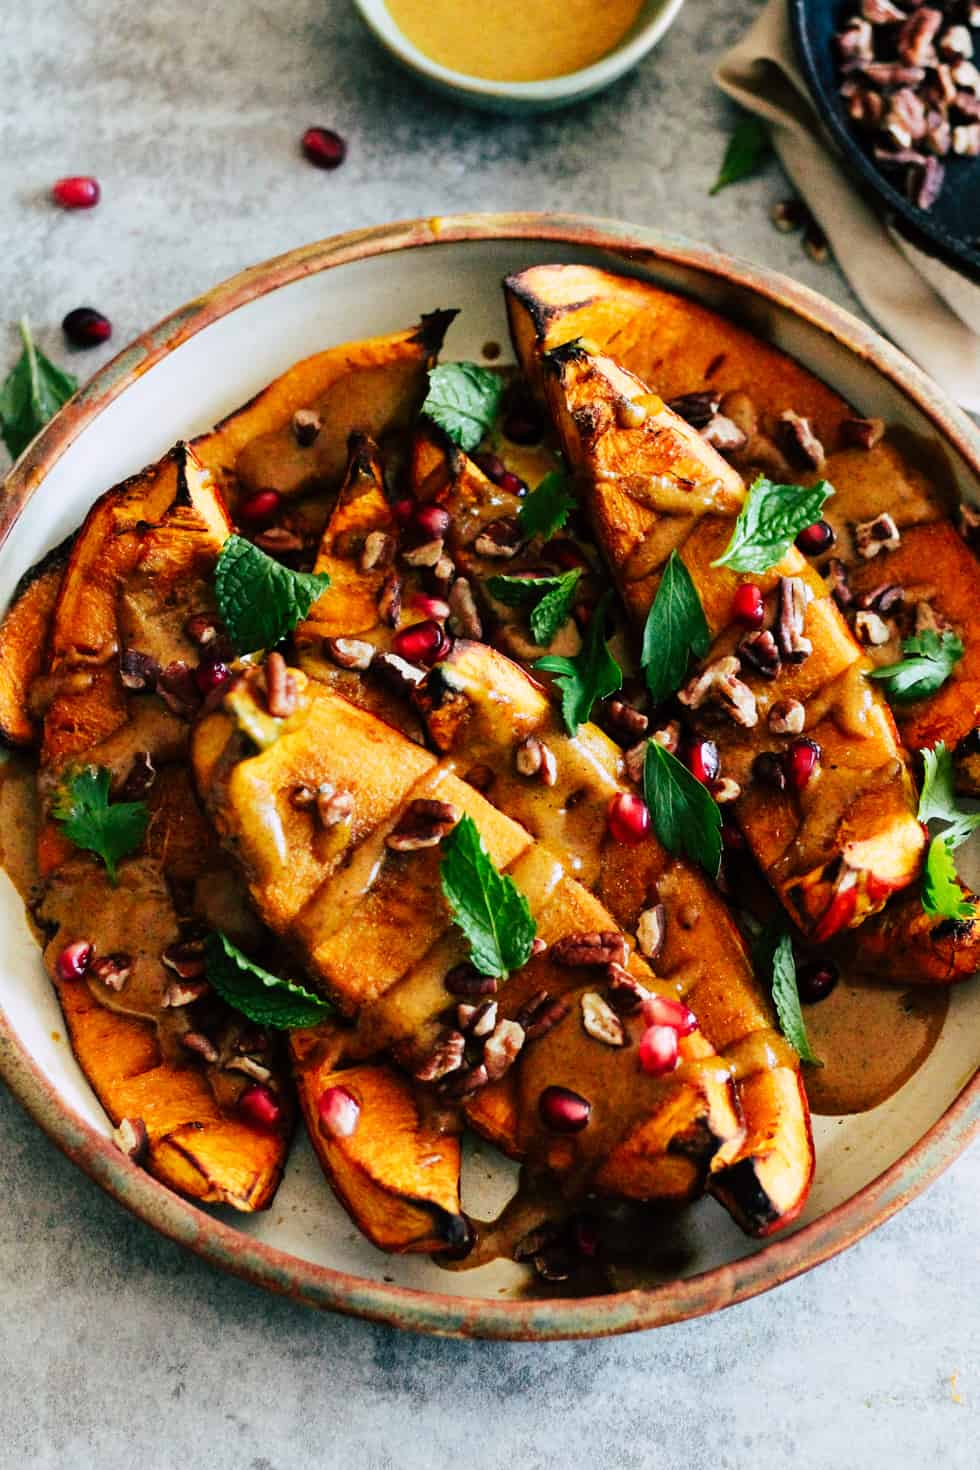 Roasted pumpkin with pomegranate, nuts and herbs in ceramic dish.